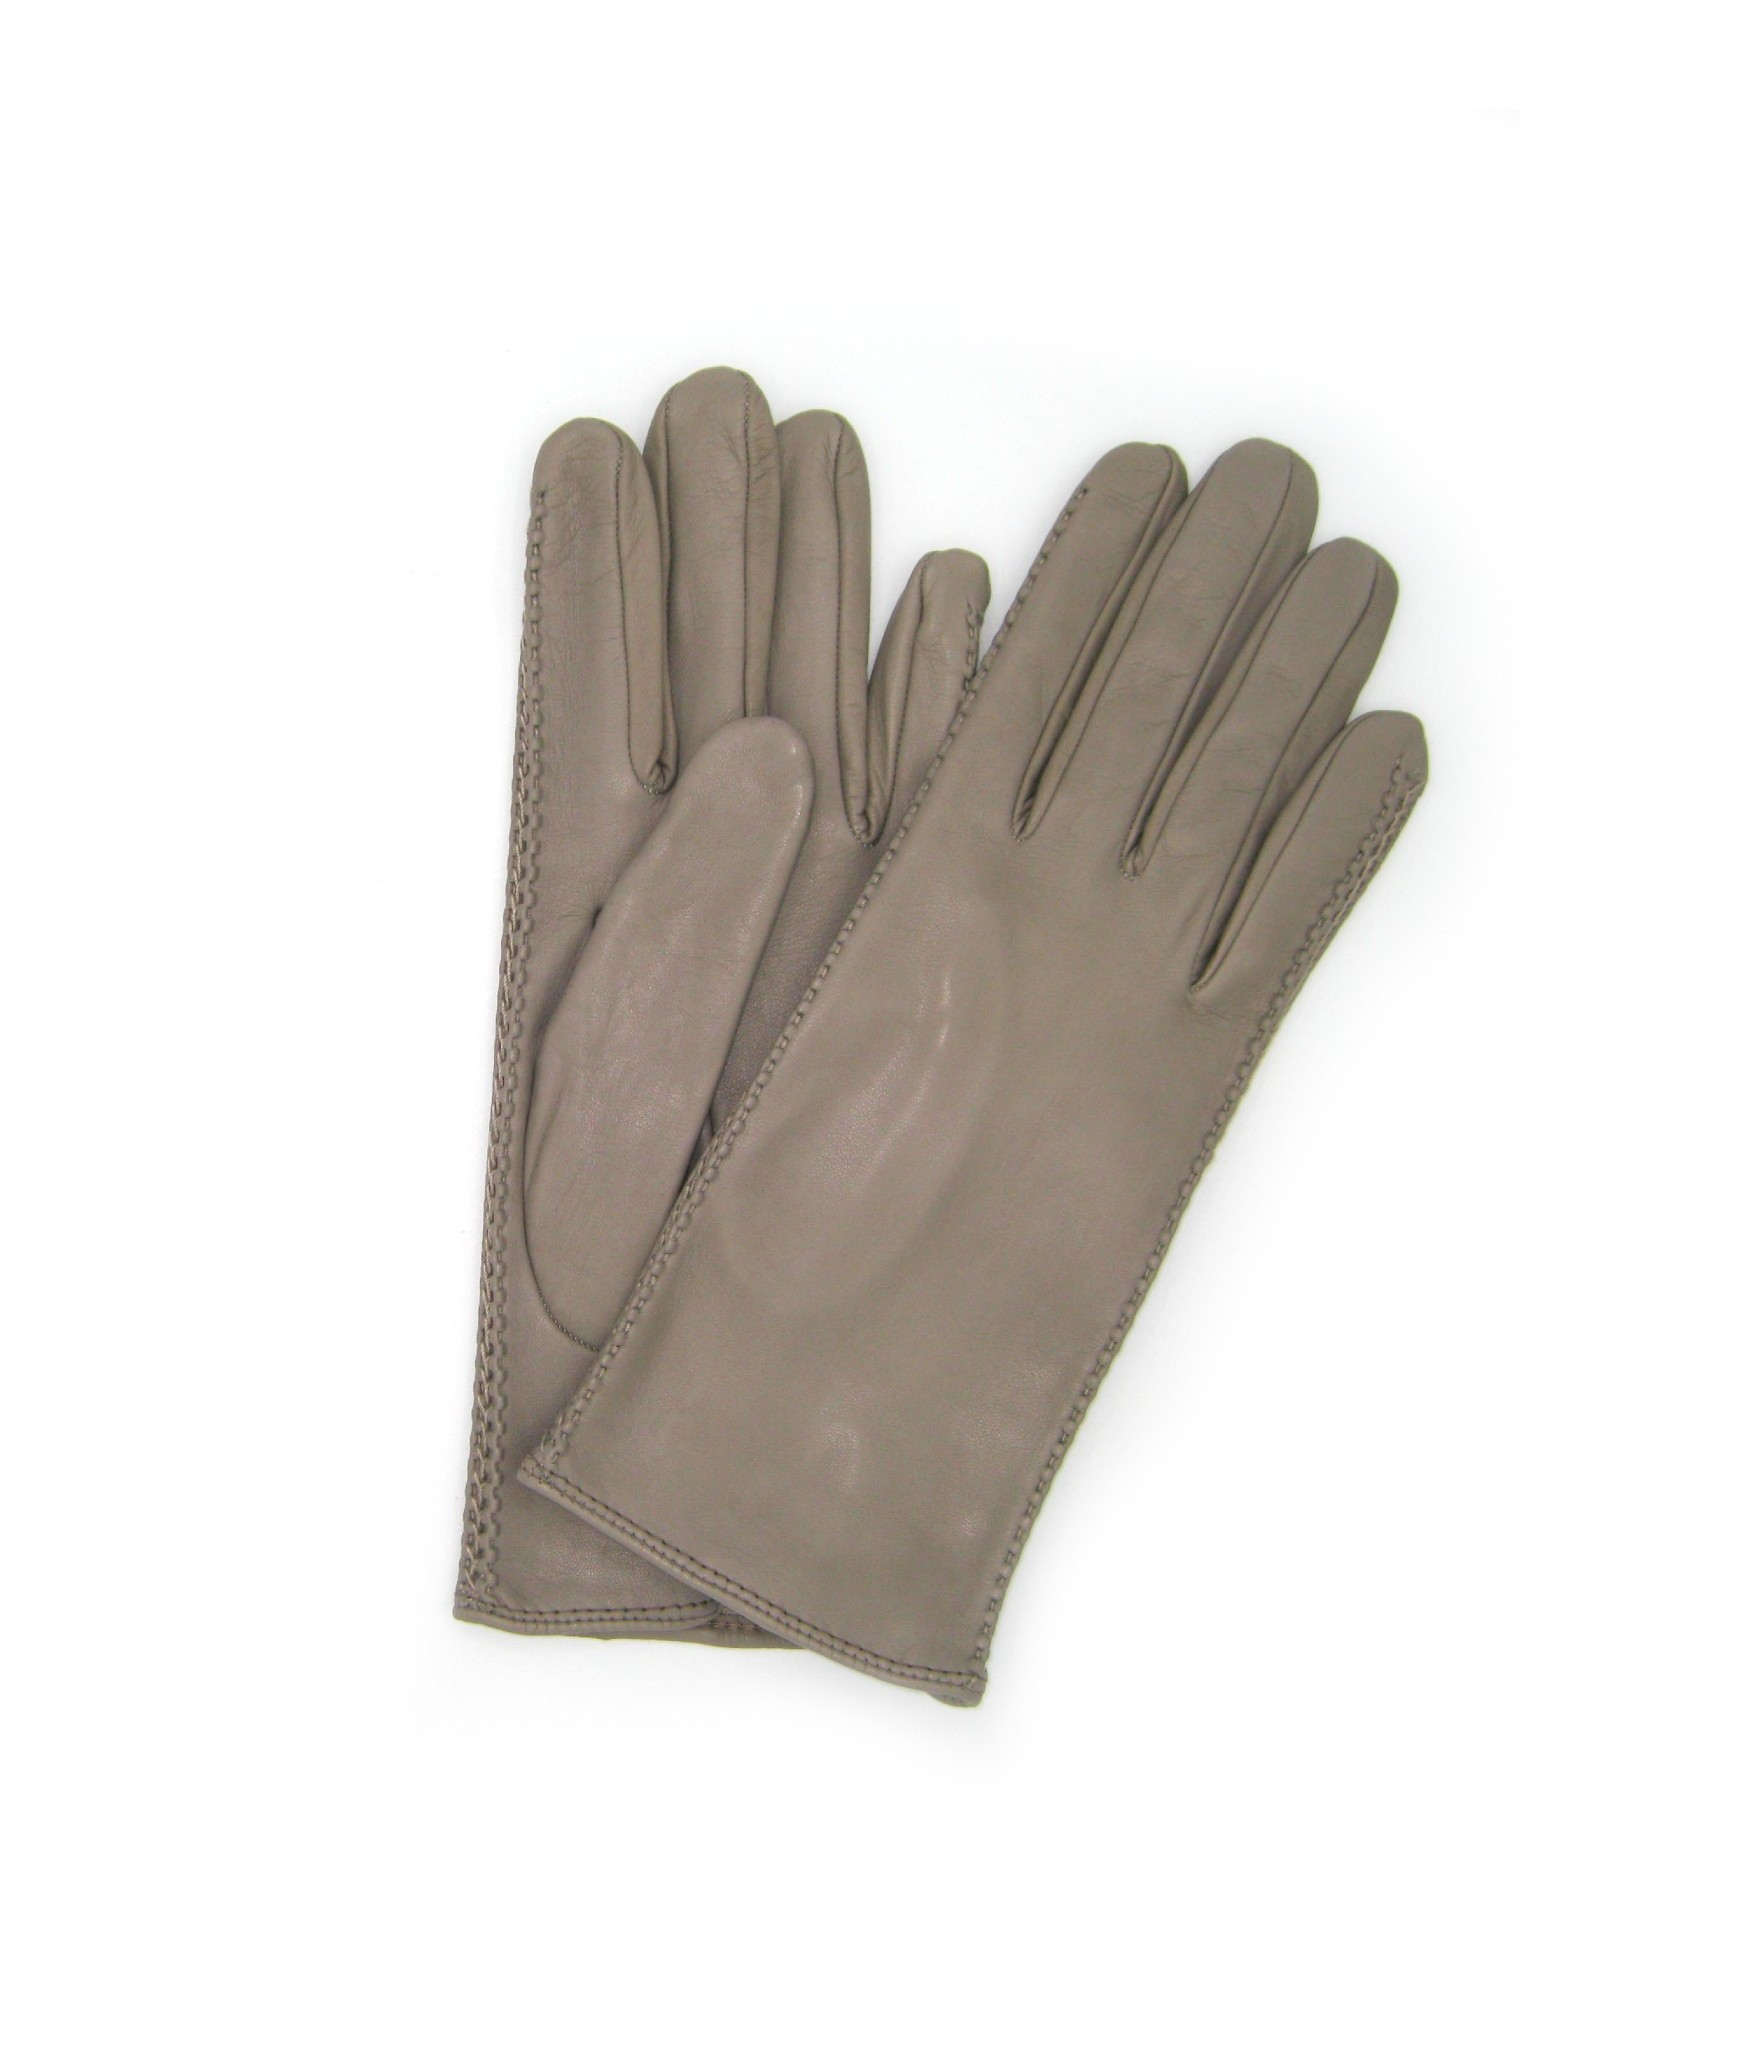 Nappa leather gloves 2bt silk lined with side tracks Mud